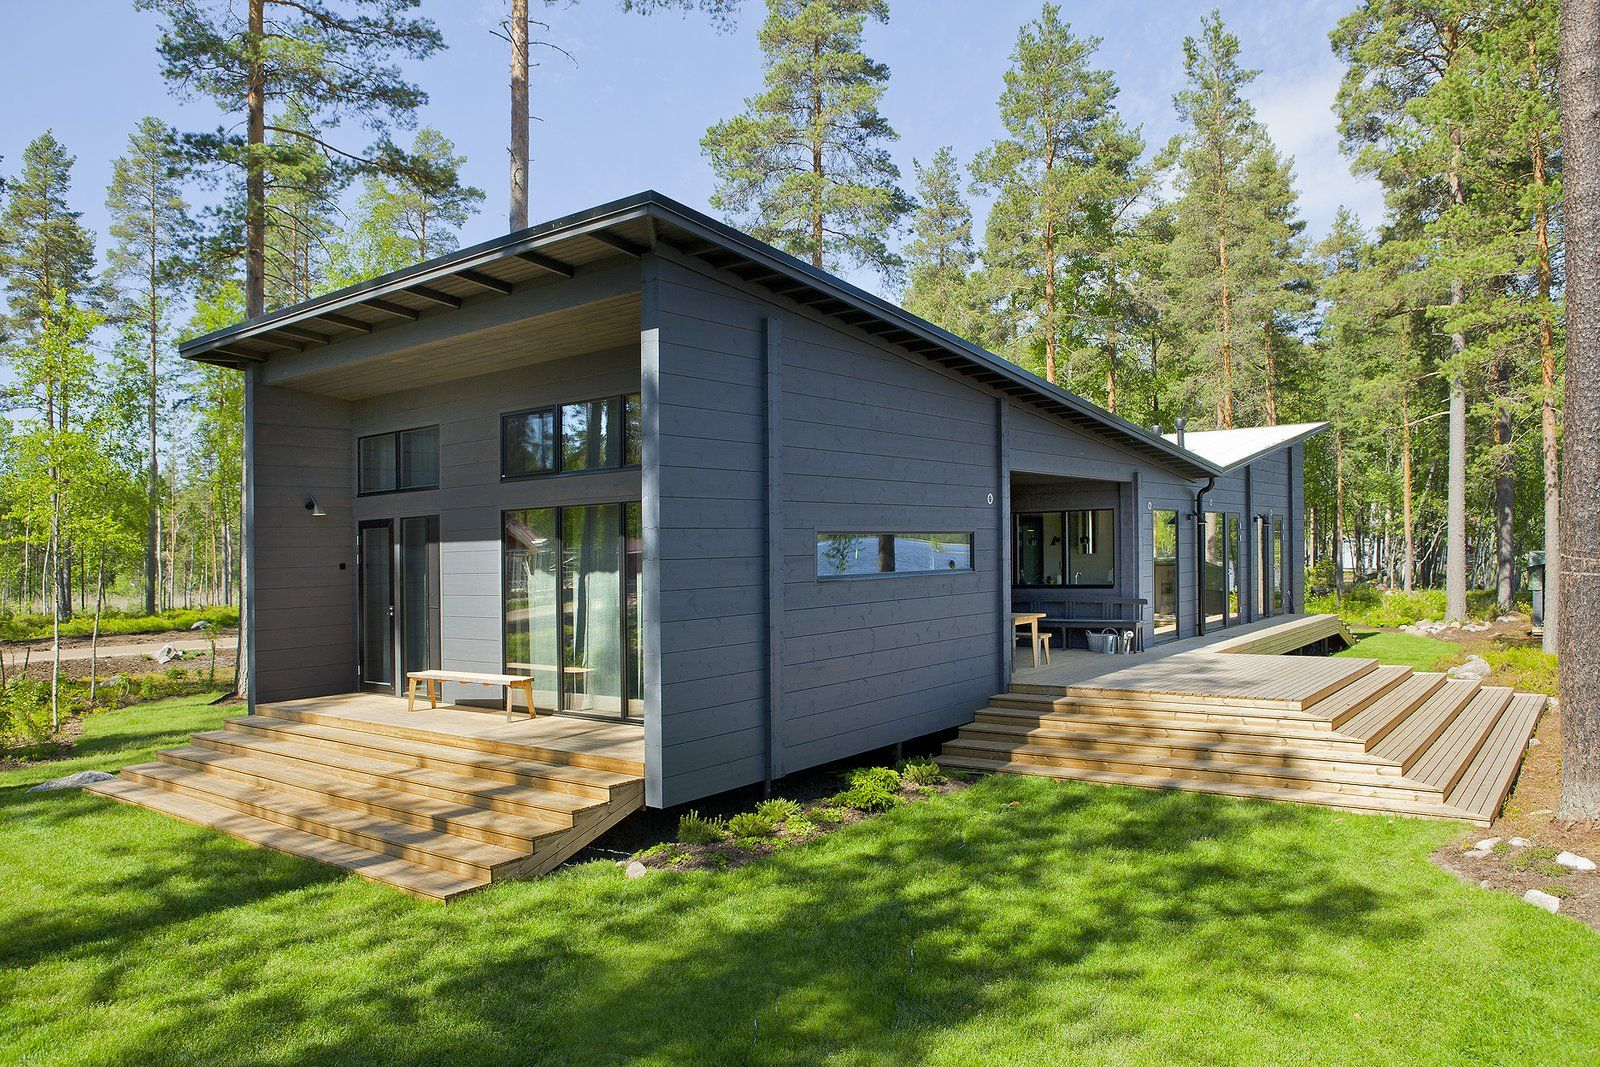 Modern Log Cabin Home Kits By Honka Prefab Log Cabin Kits In Finland Log Homes Cabin Kit Homes Log Cabin Home Kits